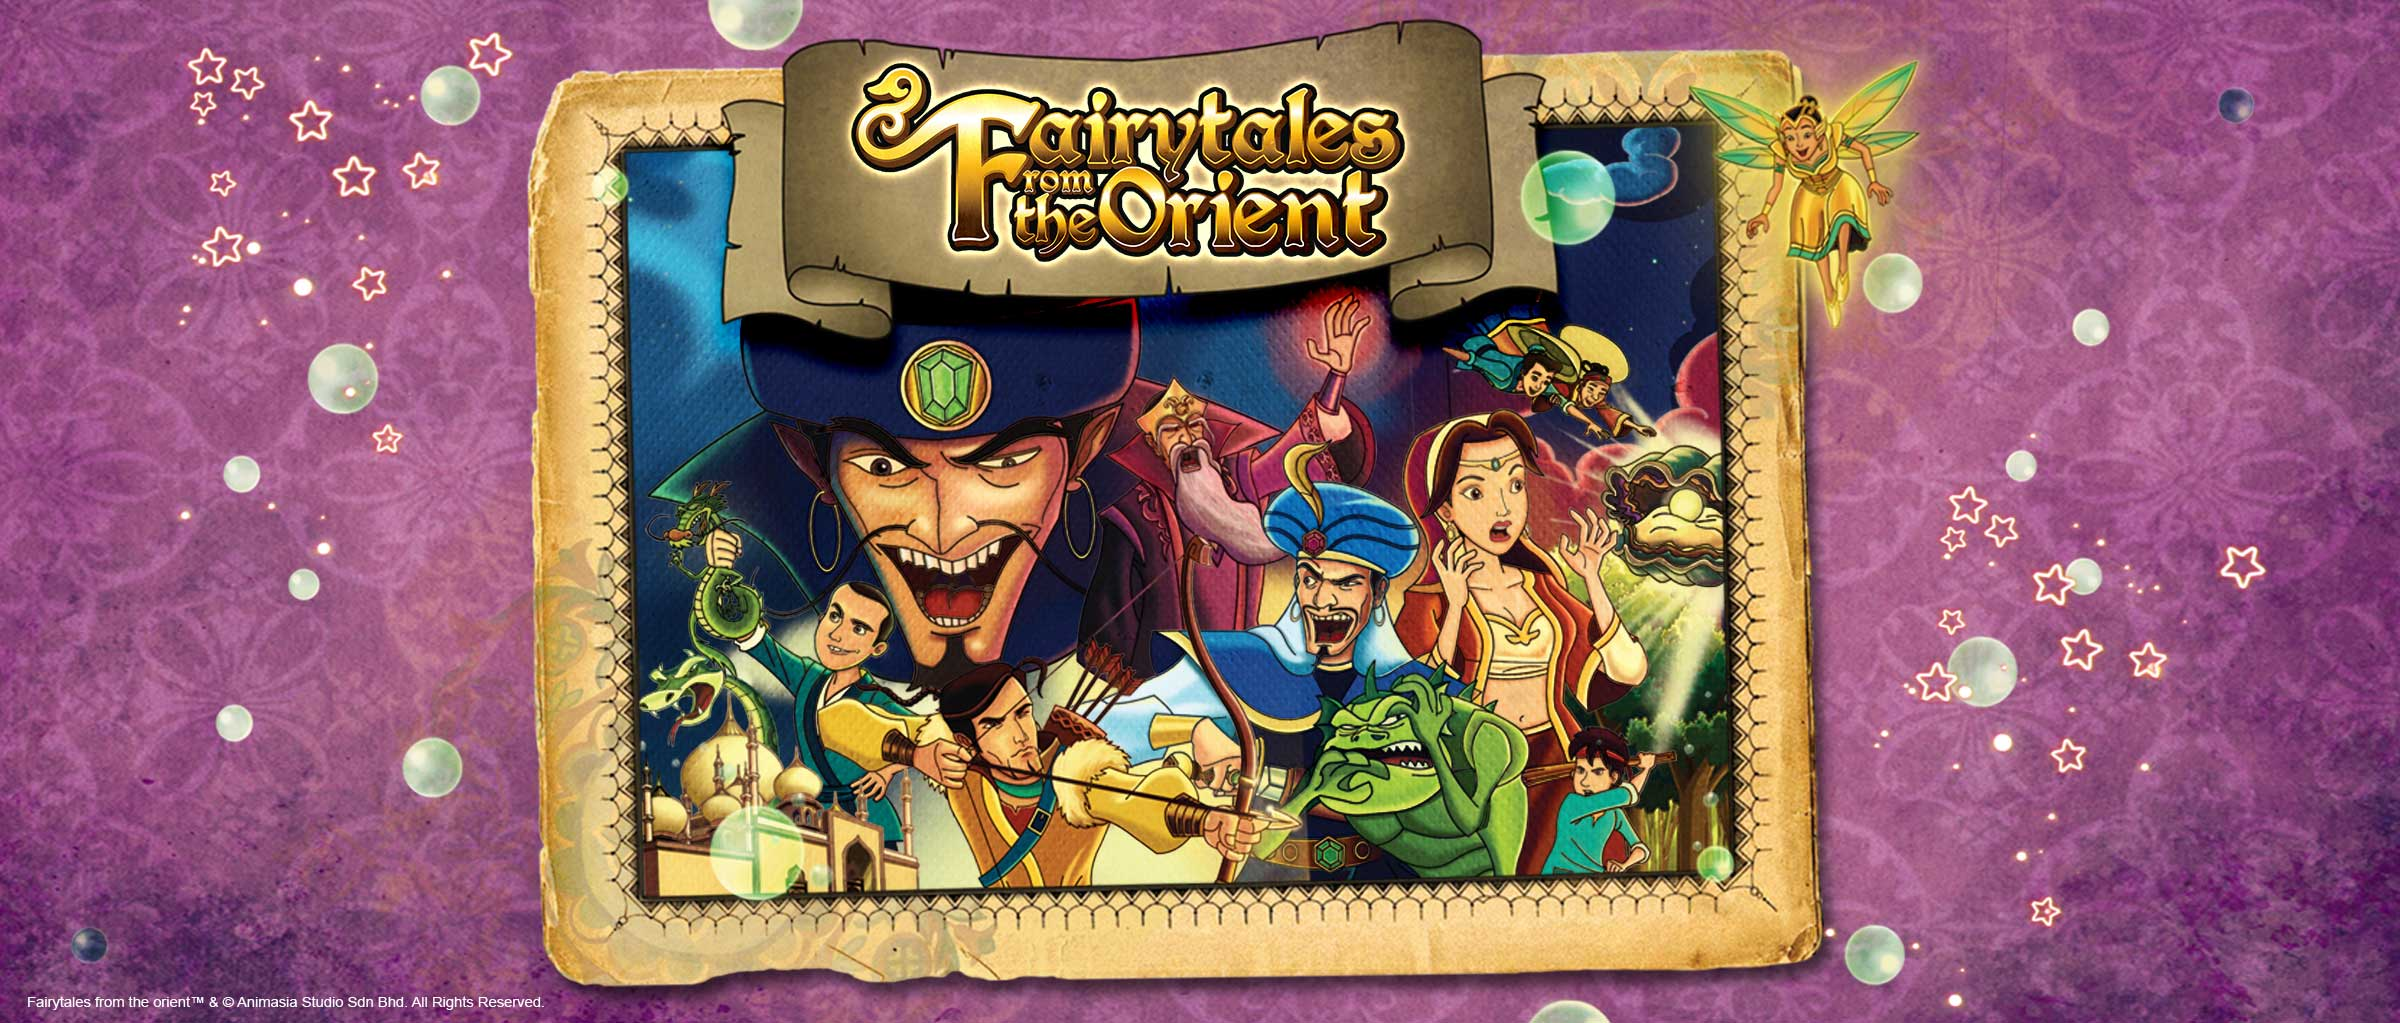 Animasia Project Banner Fairytales